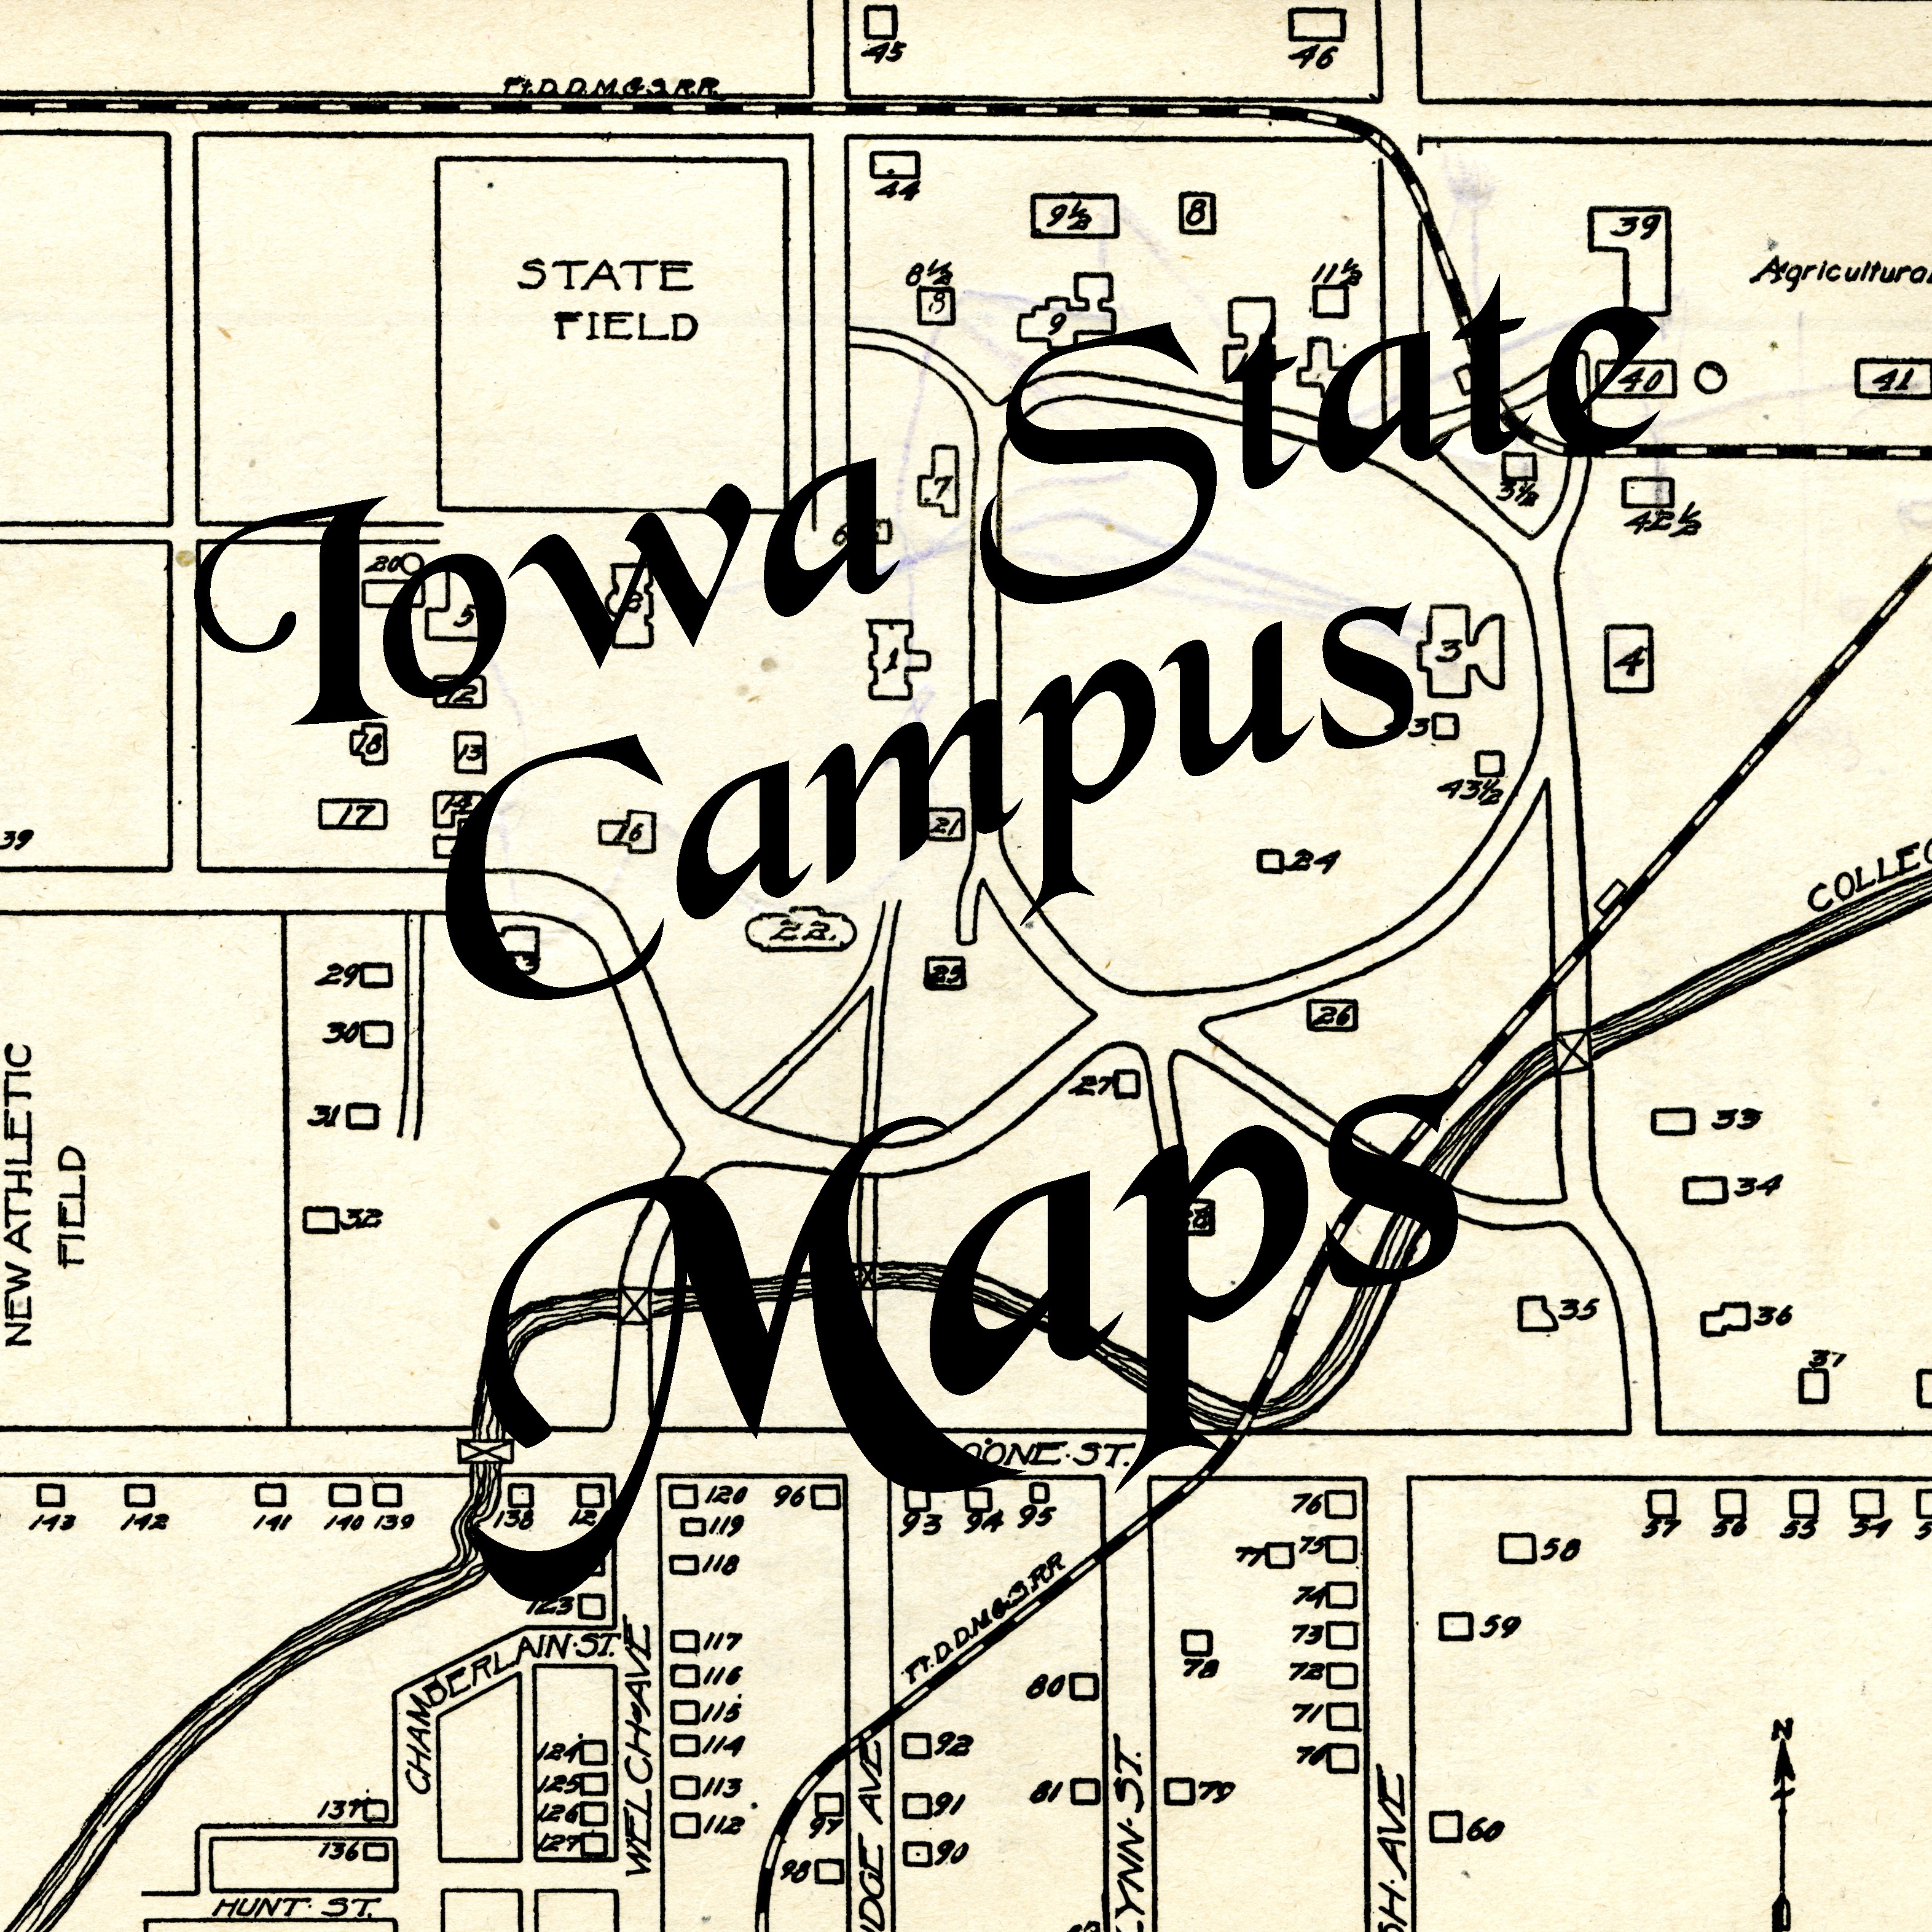 campus maps icon.jpg